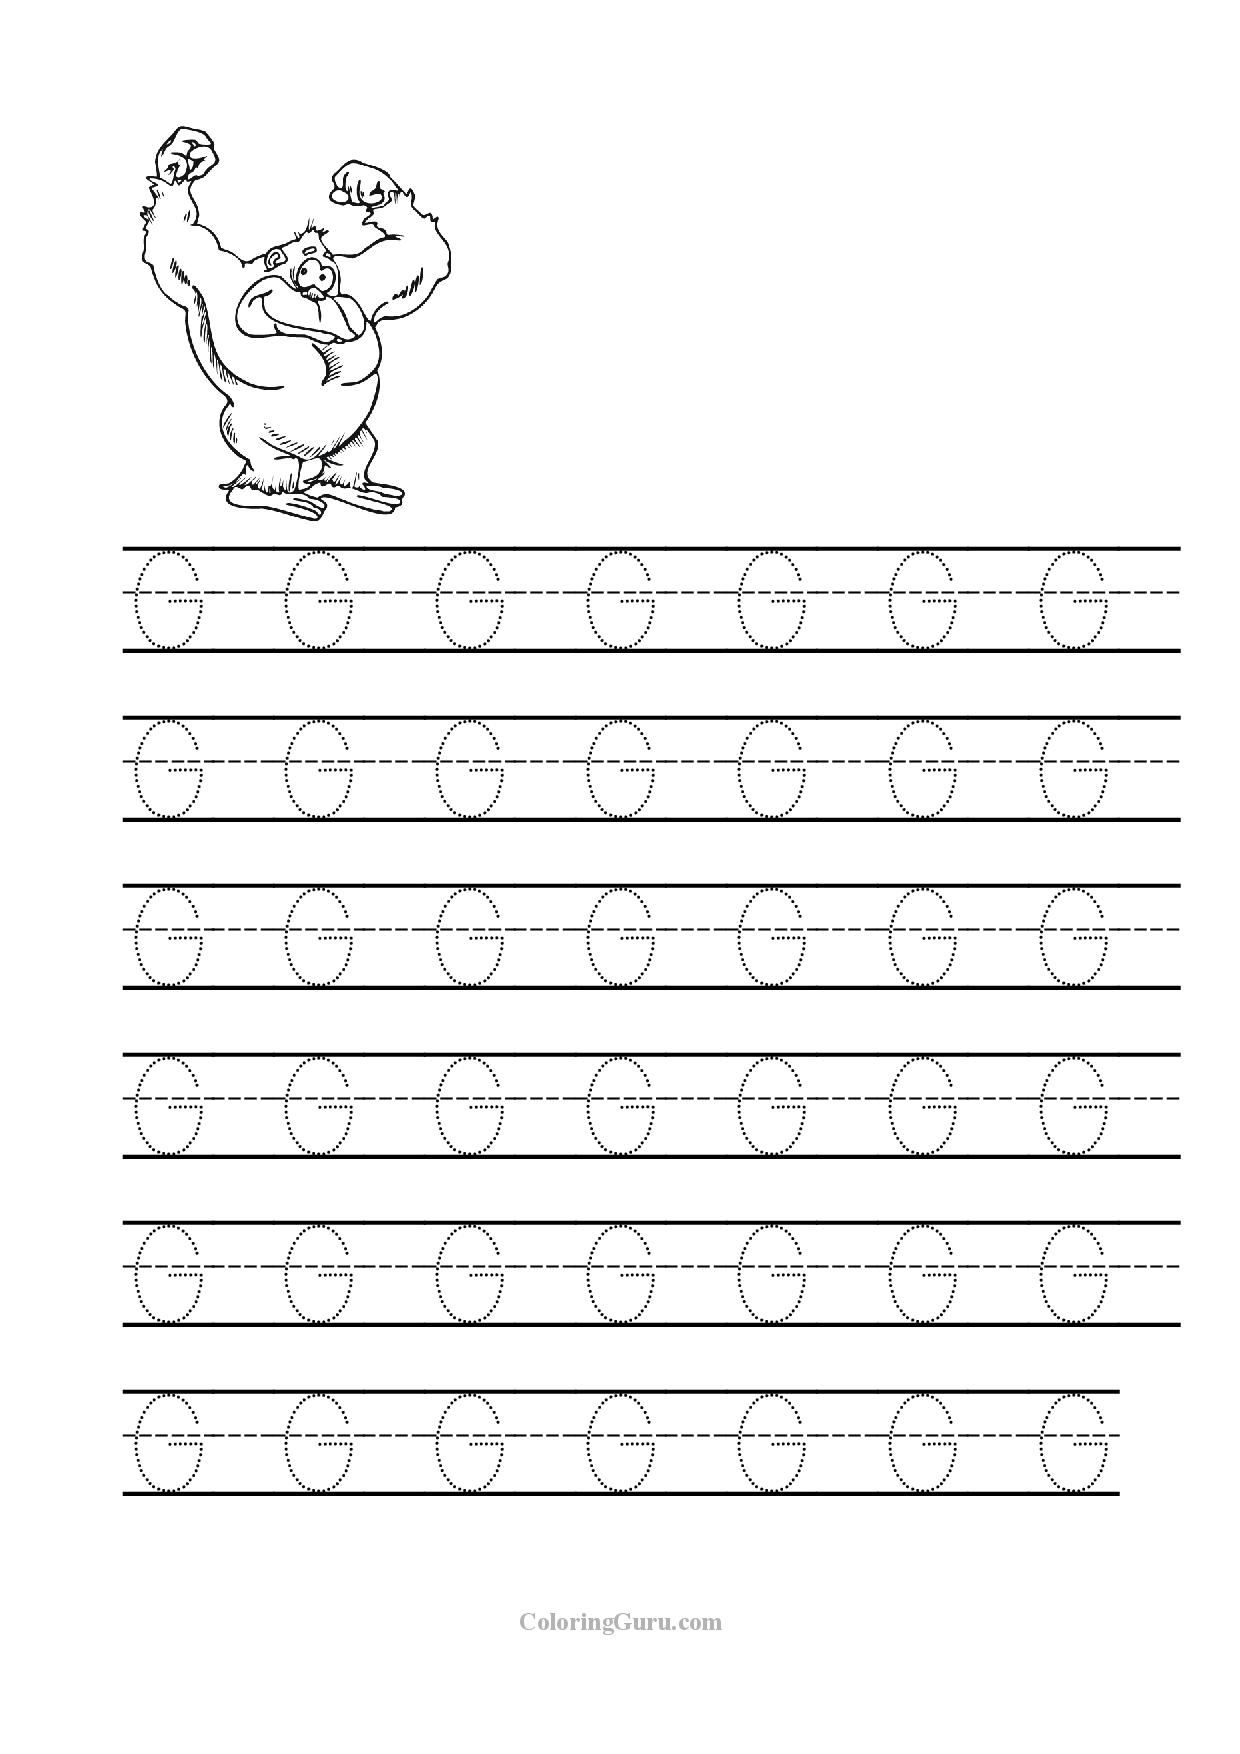 Free Printable Tracing Letter G Worksheets For Preschool pertaining to Alphabet G Tracing Worksheets